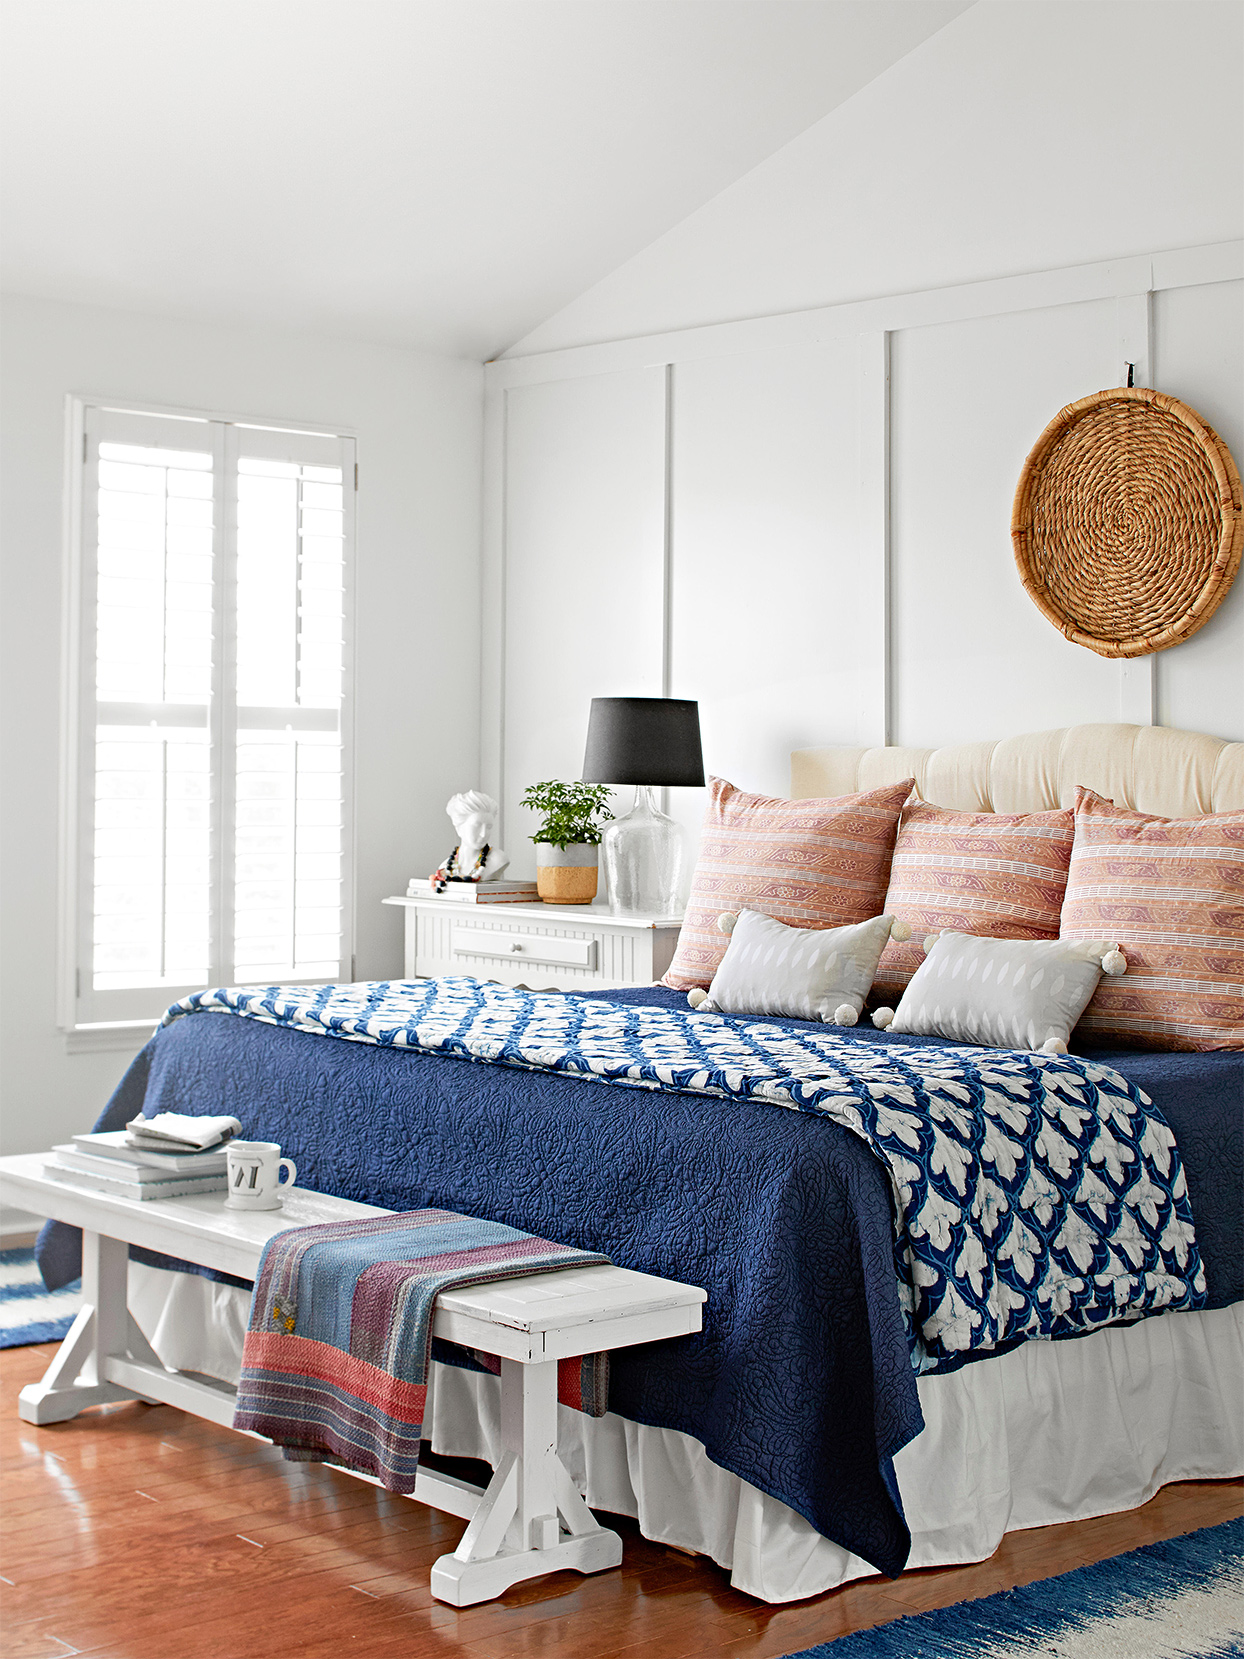 white bedroom wall panels vaulted ceiling blue coverlet